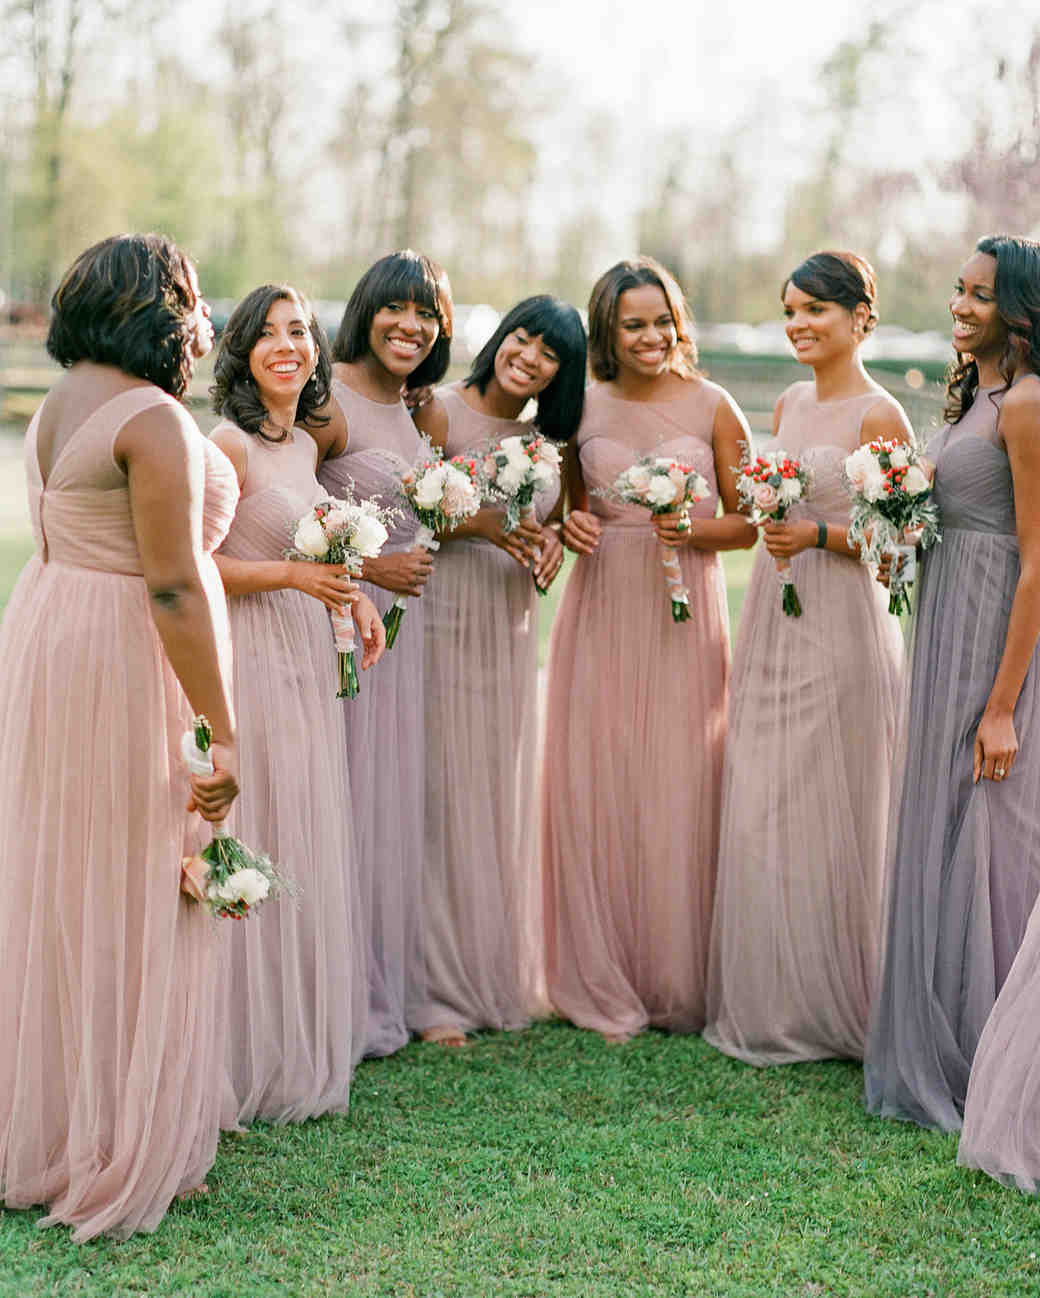 2bb8f344c0d0 28 Mismatched Bridesmaids Dresses from Real Weddings - Best Mix and Match Bridesmaids  Dresses